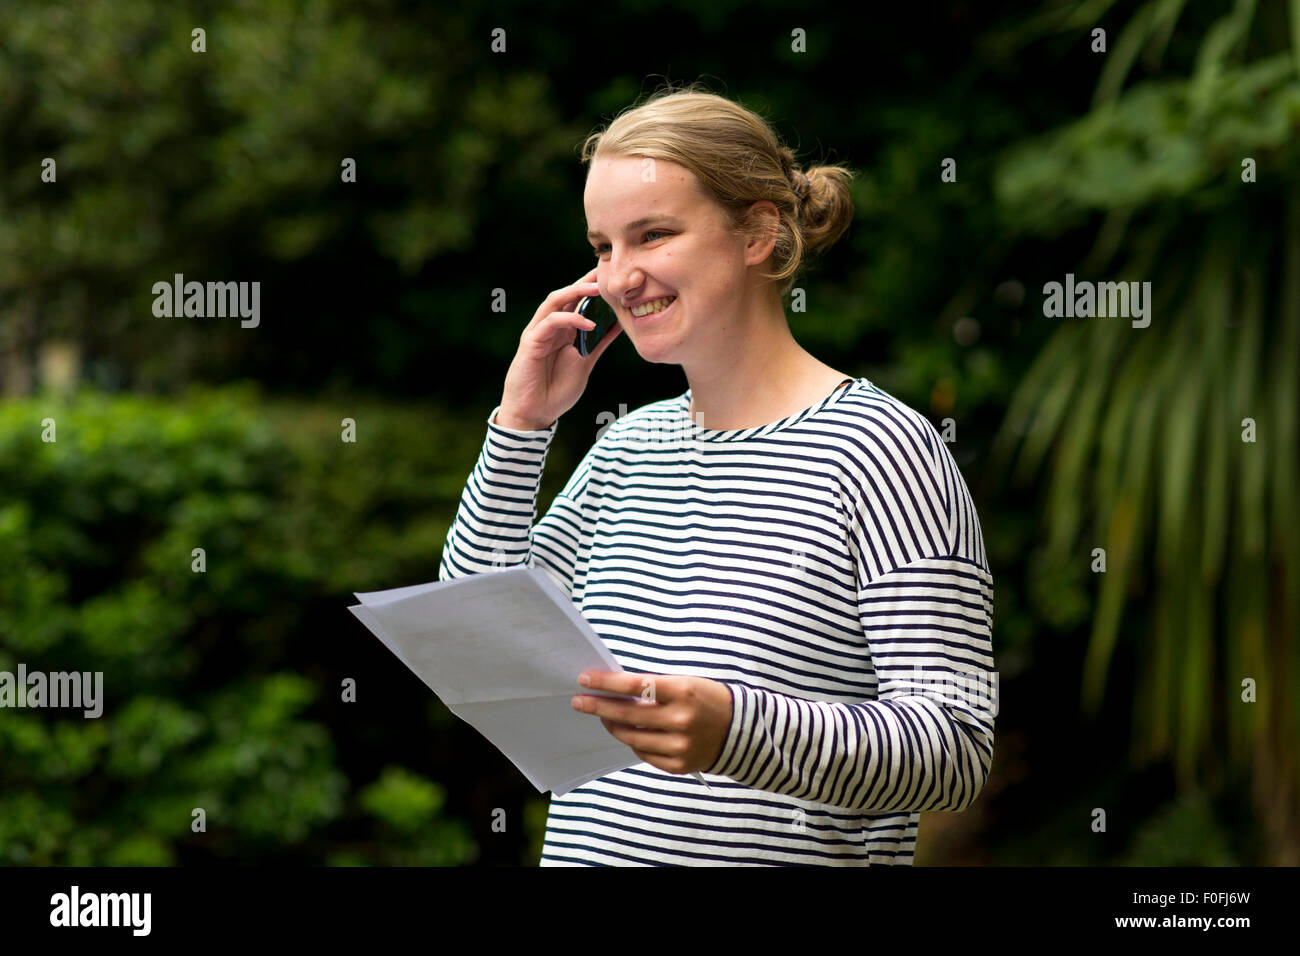 A blonde female GCSE student happy with her exam results. - Stock Image